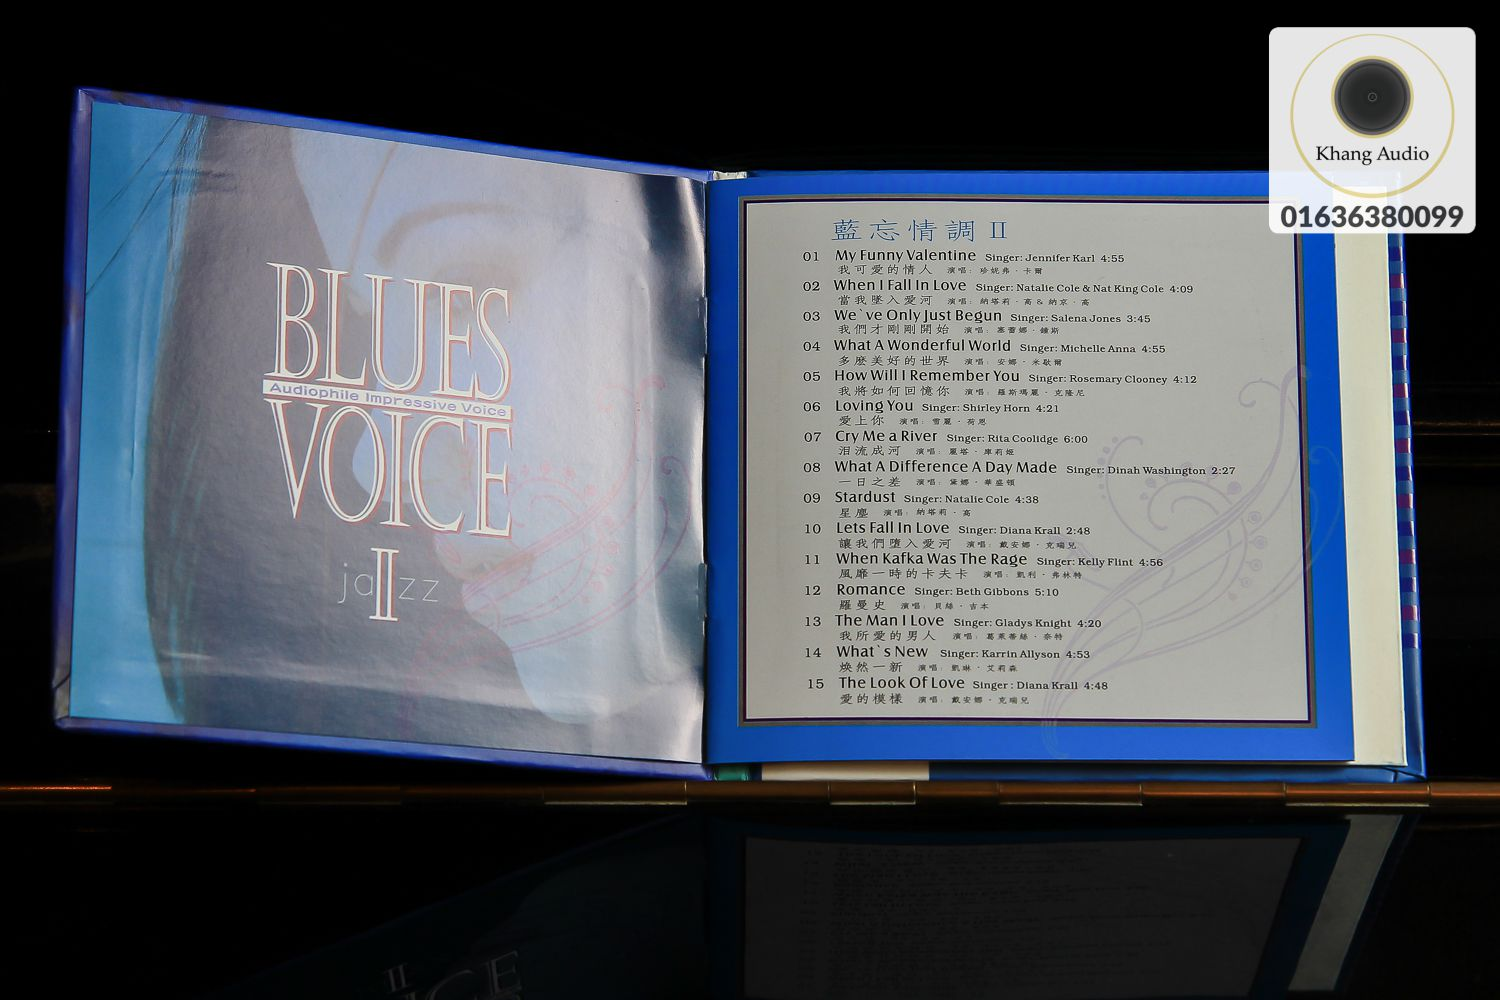 Blues Voice II HQ